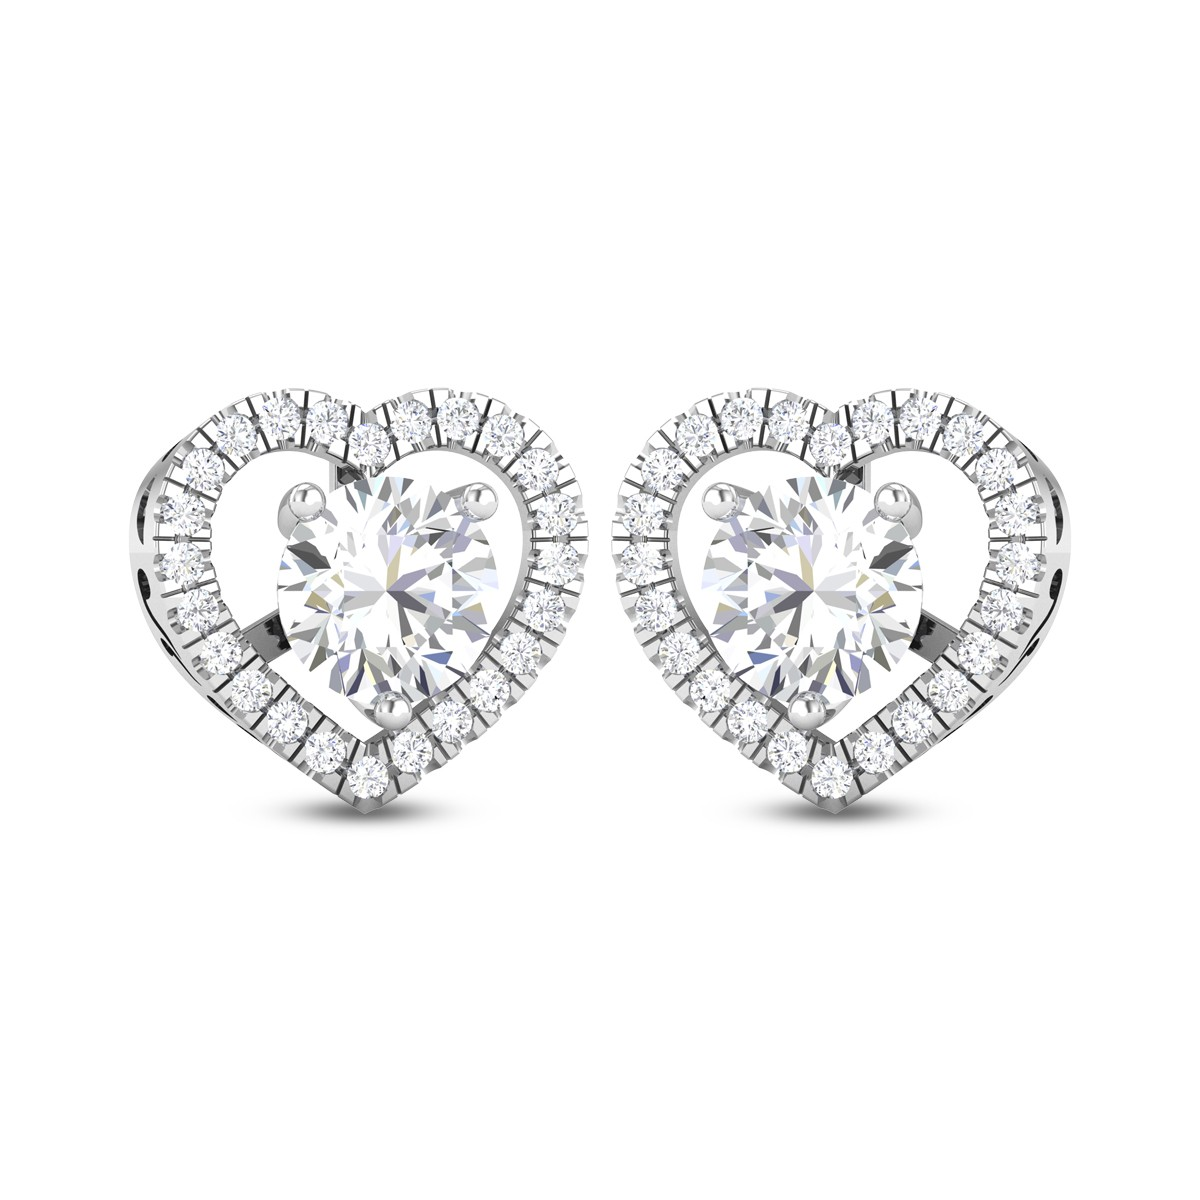 Jarvis Heart Shaped Solitaire Earring